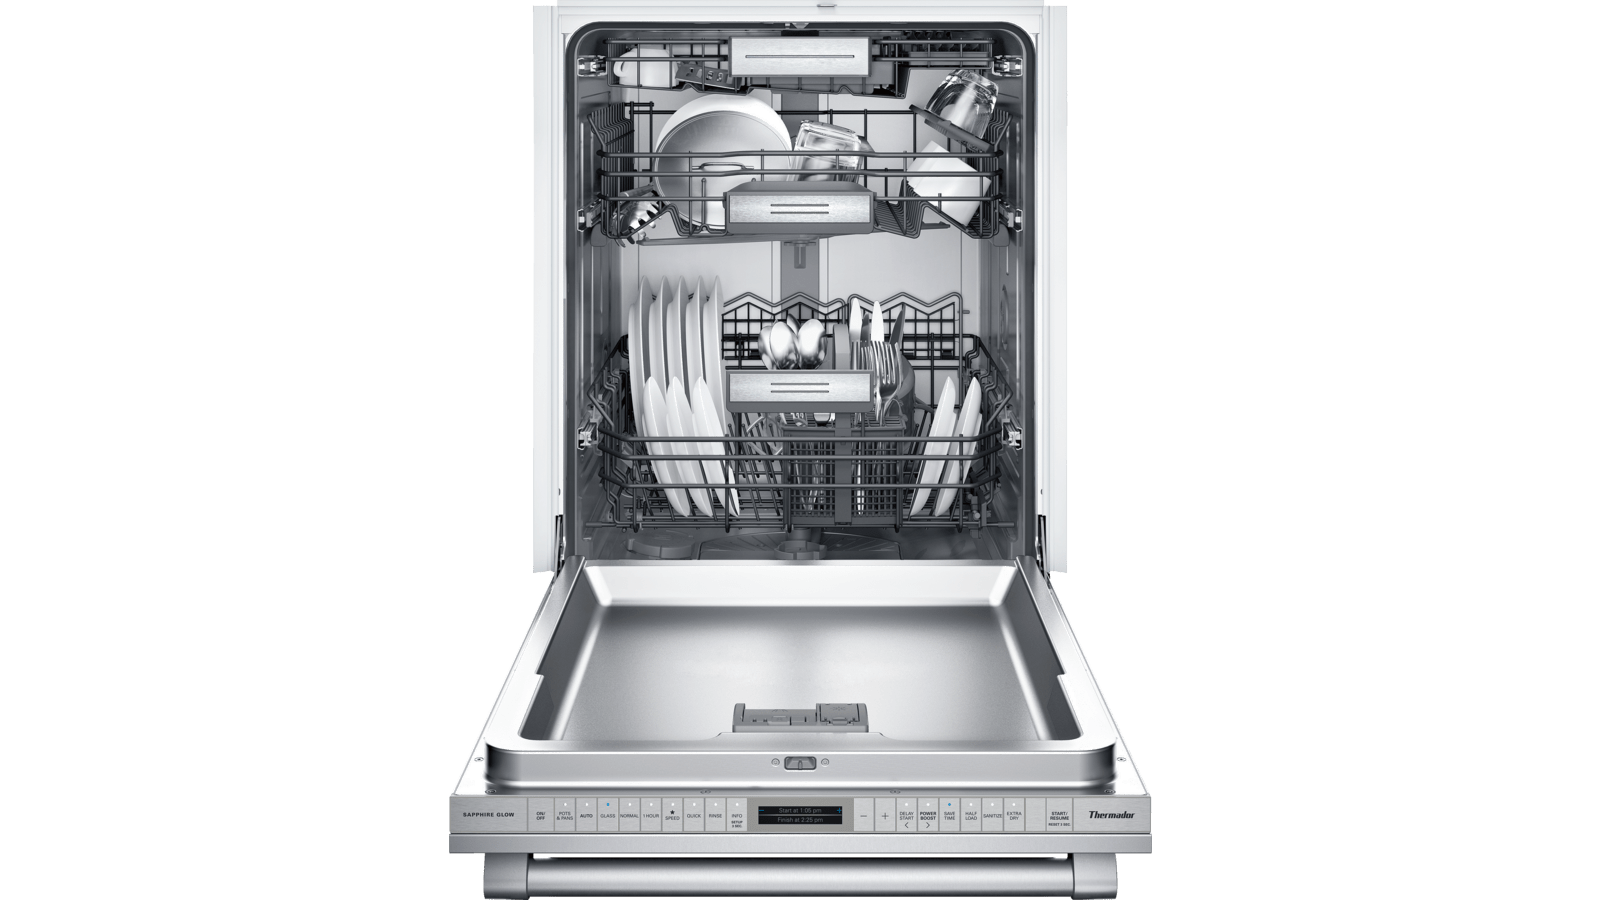 Thermador Dwhd860rfp Dishwasher